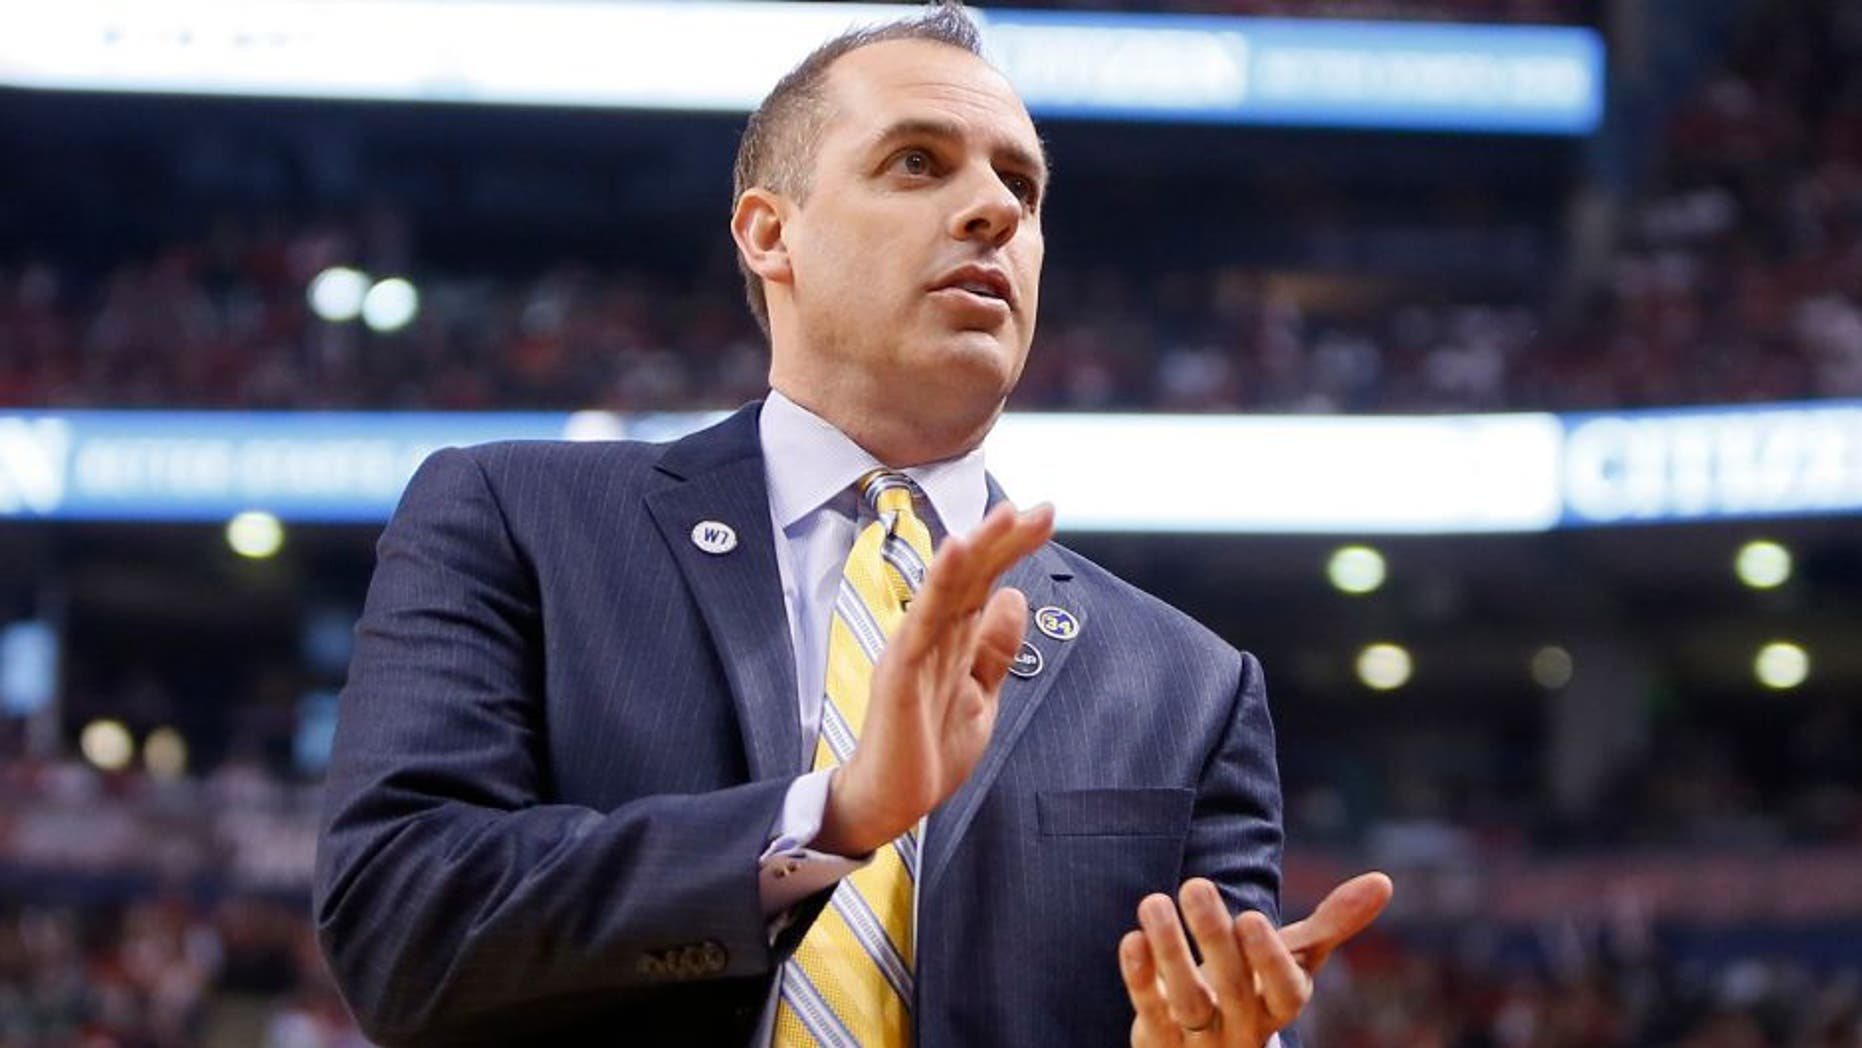 Apr 16, 2016; Toronto, Ontario, CAN; Indiana Pacers head coach Frank Vogel reacts in game one of the first round of the 2016 NBA Playoffs against the Toronto Raptors at Air Canada Centre. Indiana defeated Toronto 100-90. Mandatory Credit: John E. Sokolowski-USA TODAY Sports